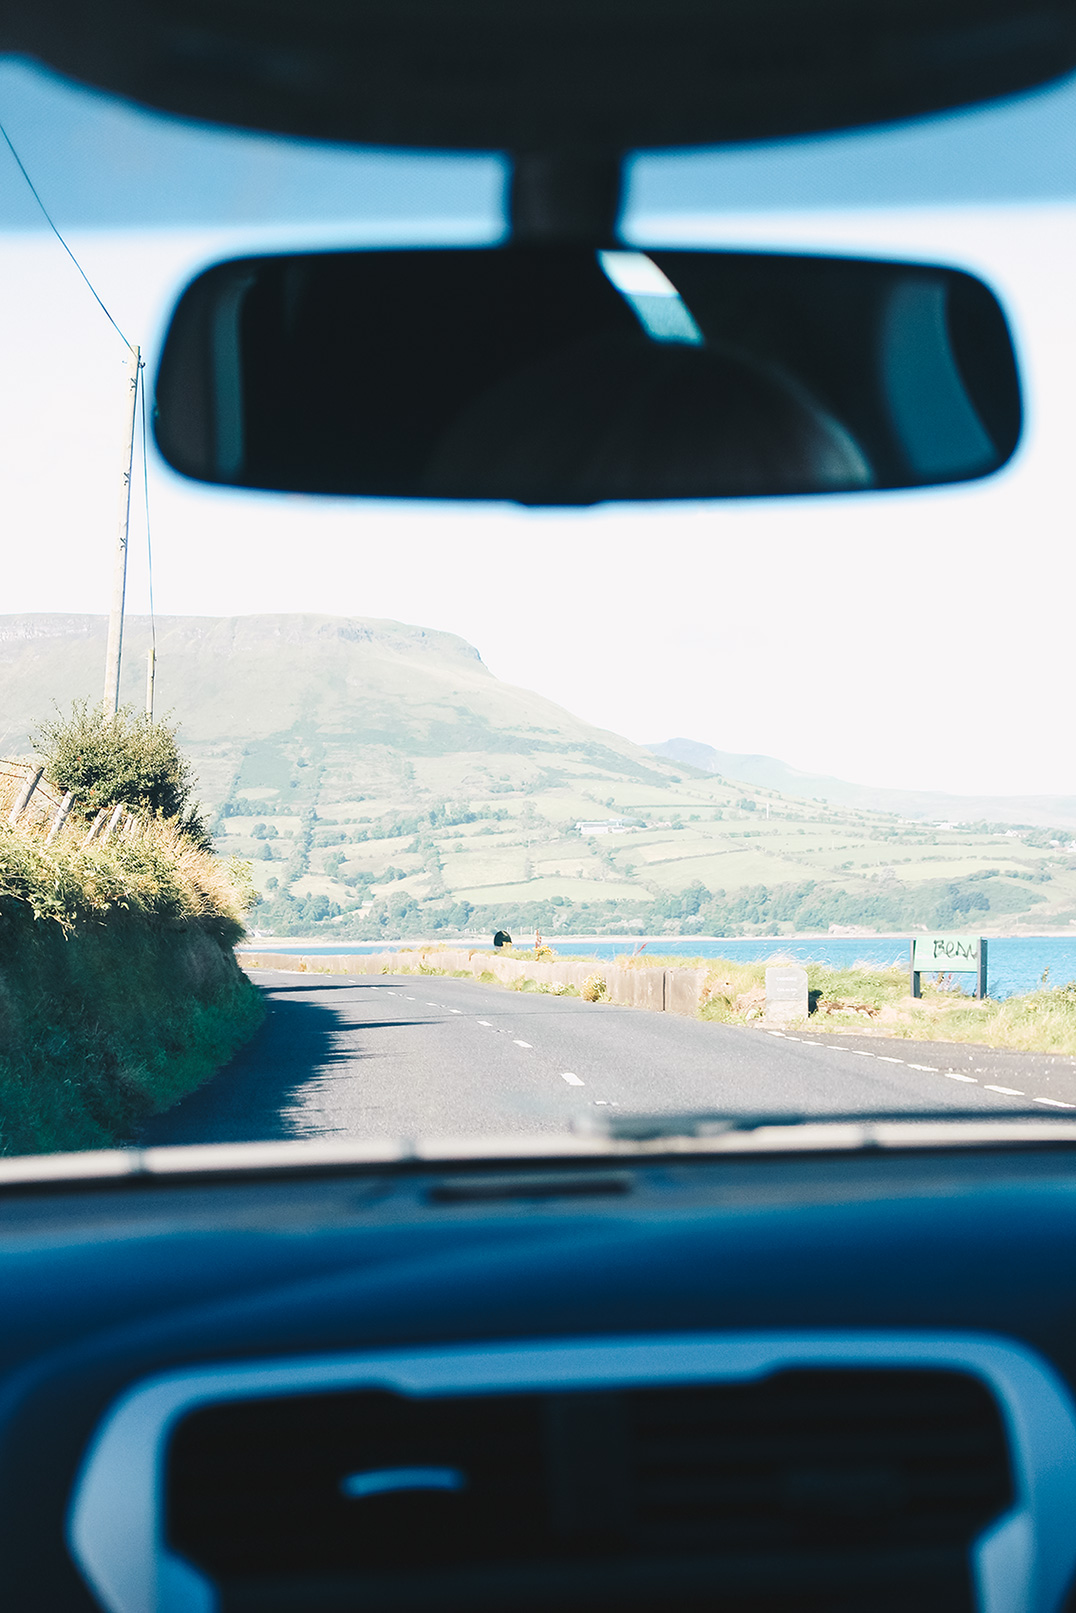 car-sligo-irland-nordirland